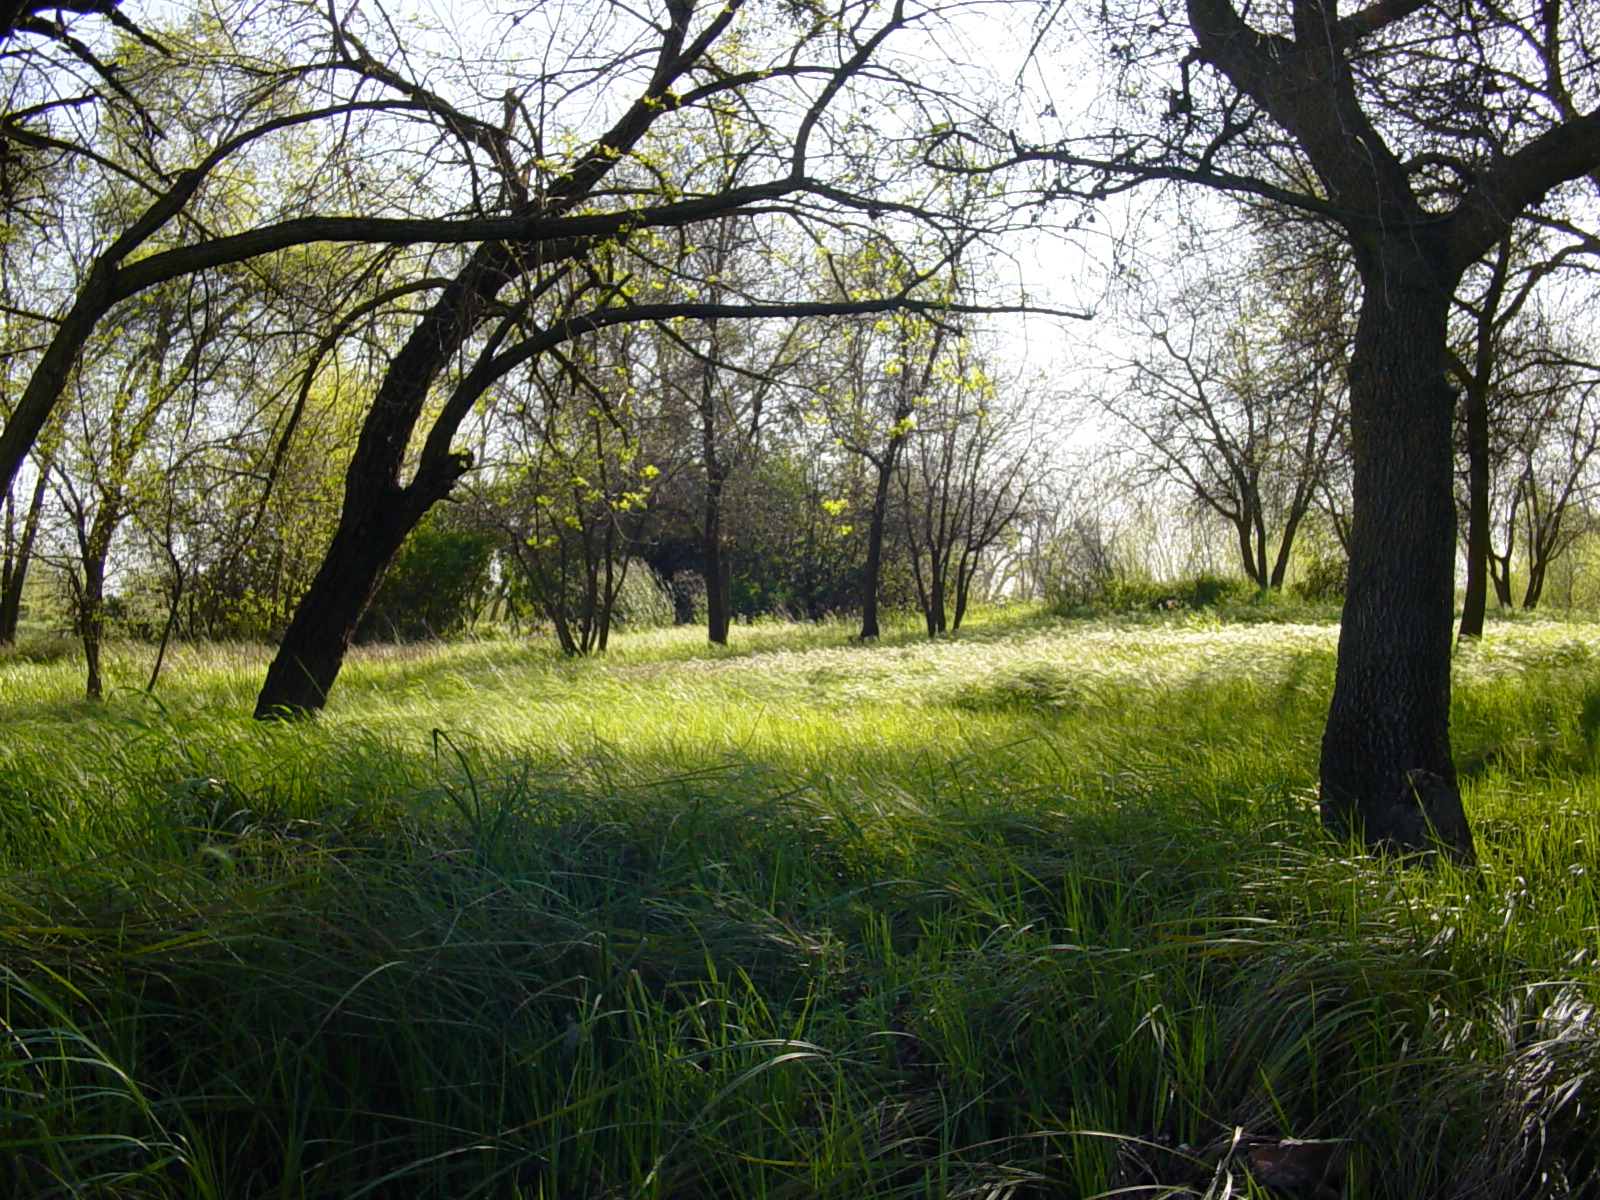 Riparian understory along the Sacramento River